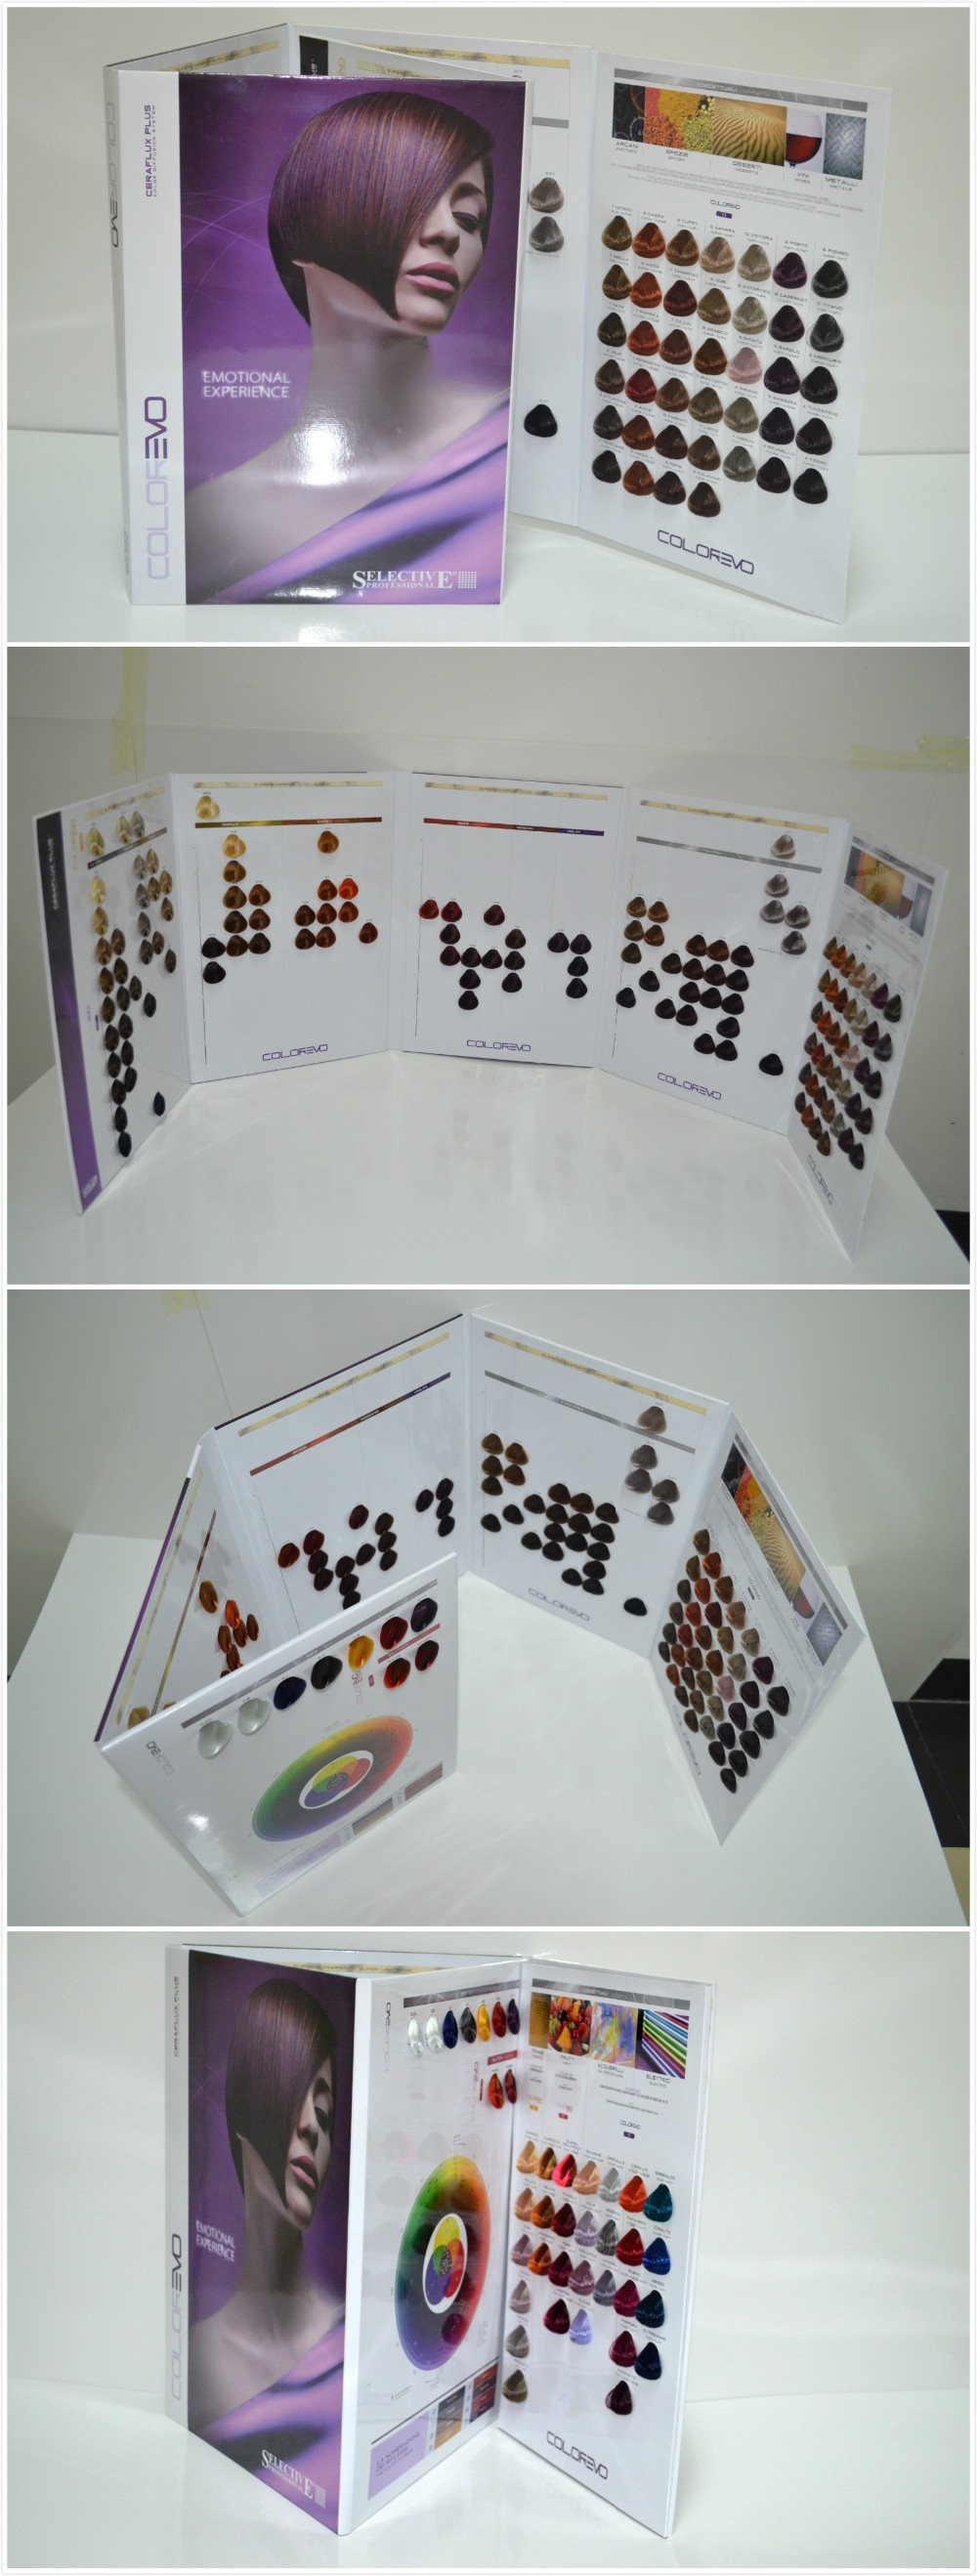 Loreal Hair Color Chart Swatch Book With Hair Fiber For Hair Color